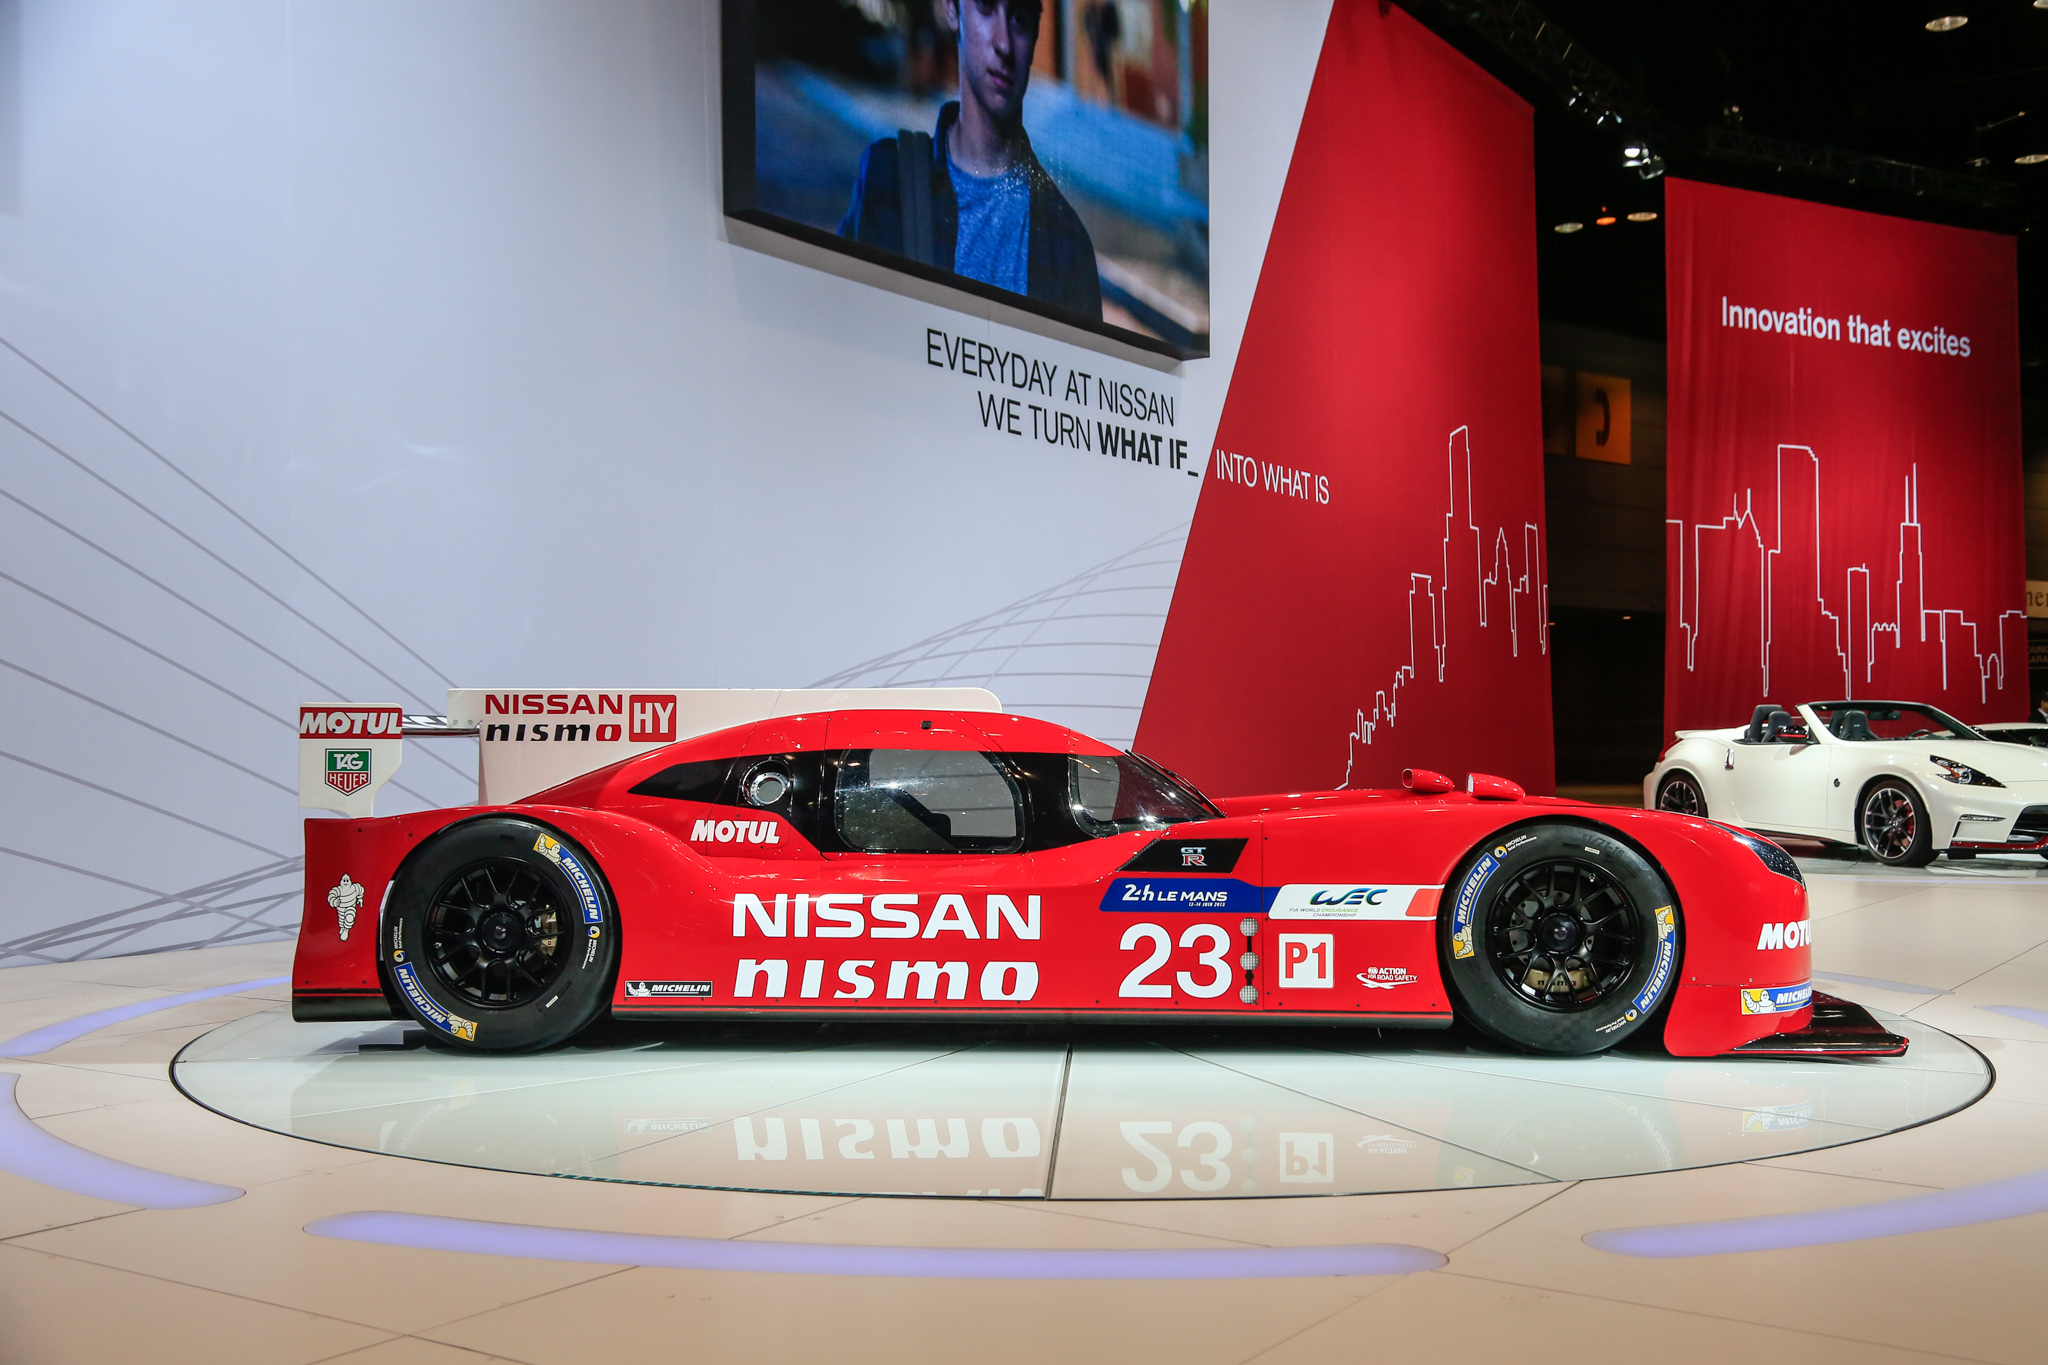 2019 Nissan GT R LM Nismo Racecar photo - 1